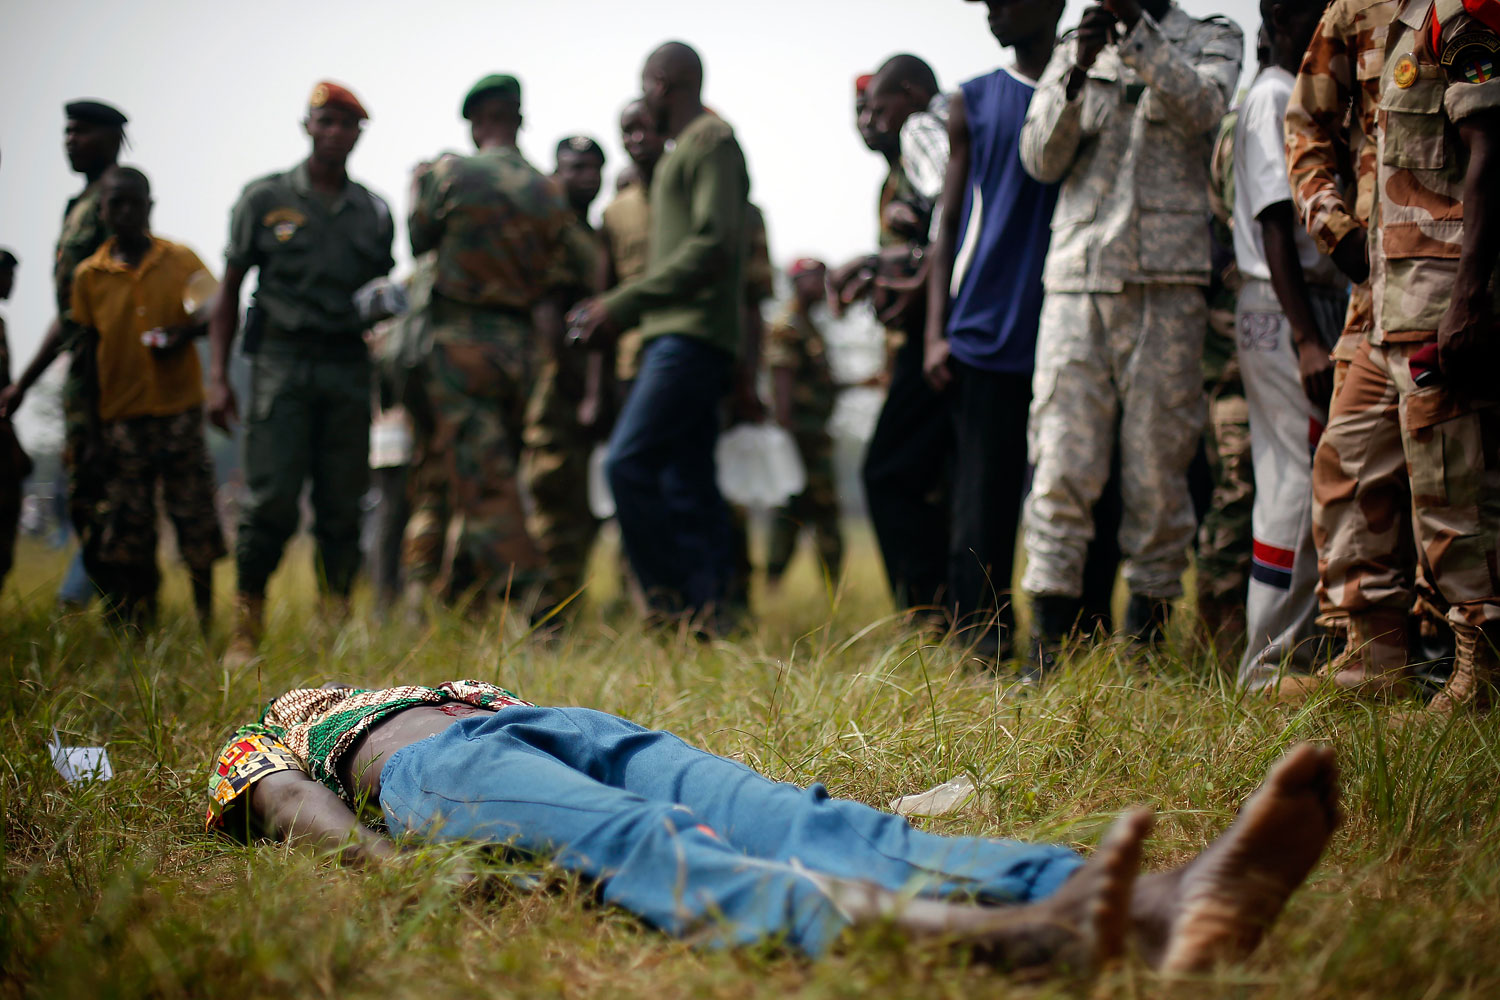 A man suspected to be a Muslim Seleka militiaman lays wounded after being stabbed by newly enlisted Central African Armed Forces soldiers moments after Central African Republic Interim President Catherine Samba-Panza addressed the troops in Bangui, Feb. 5, 2014.